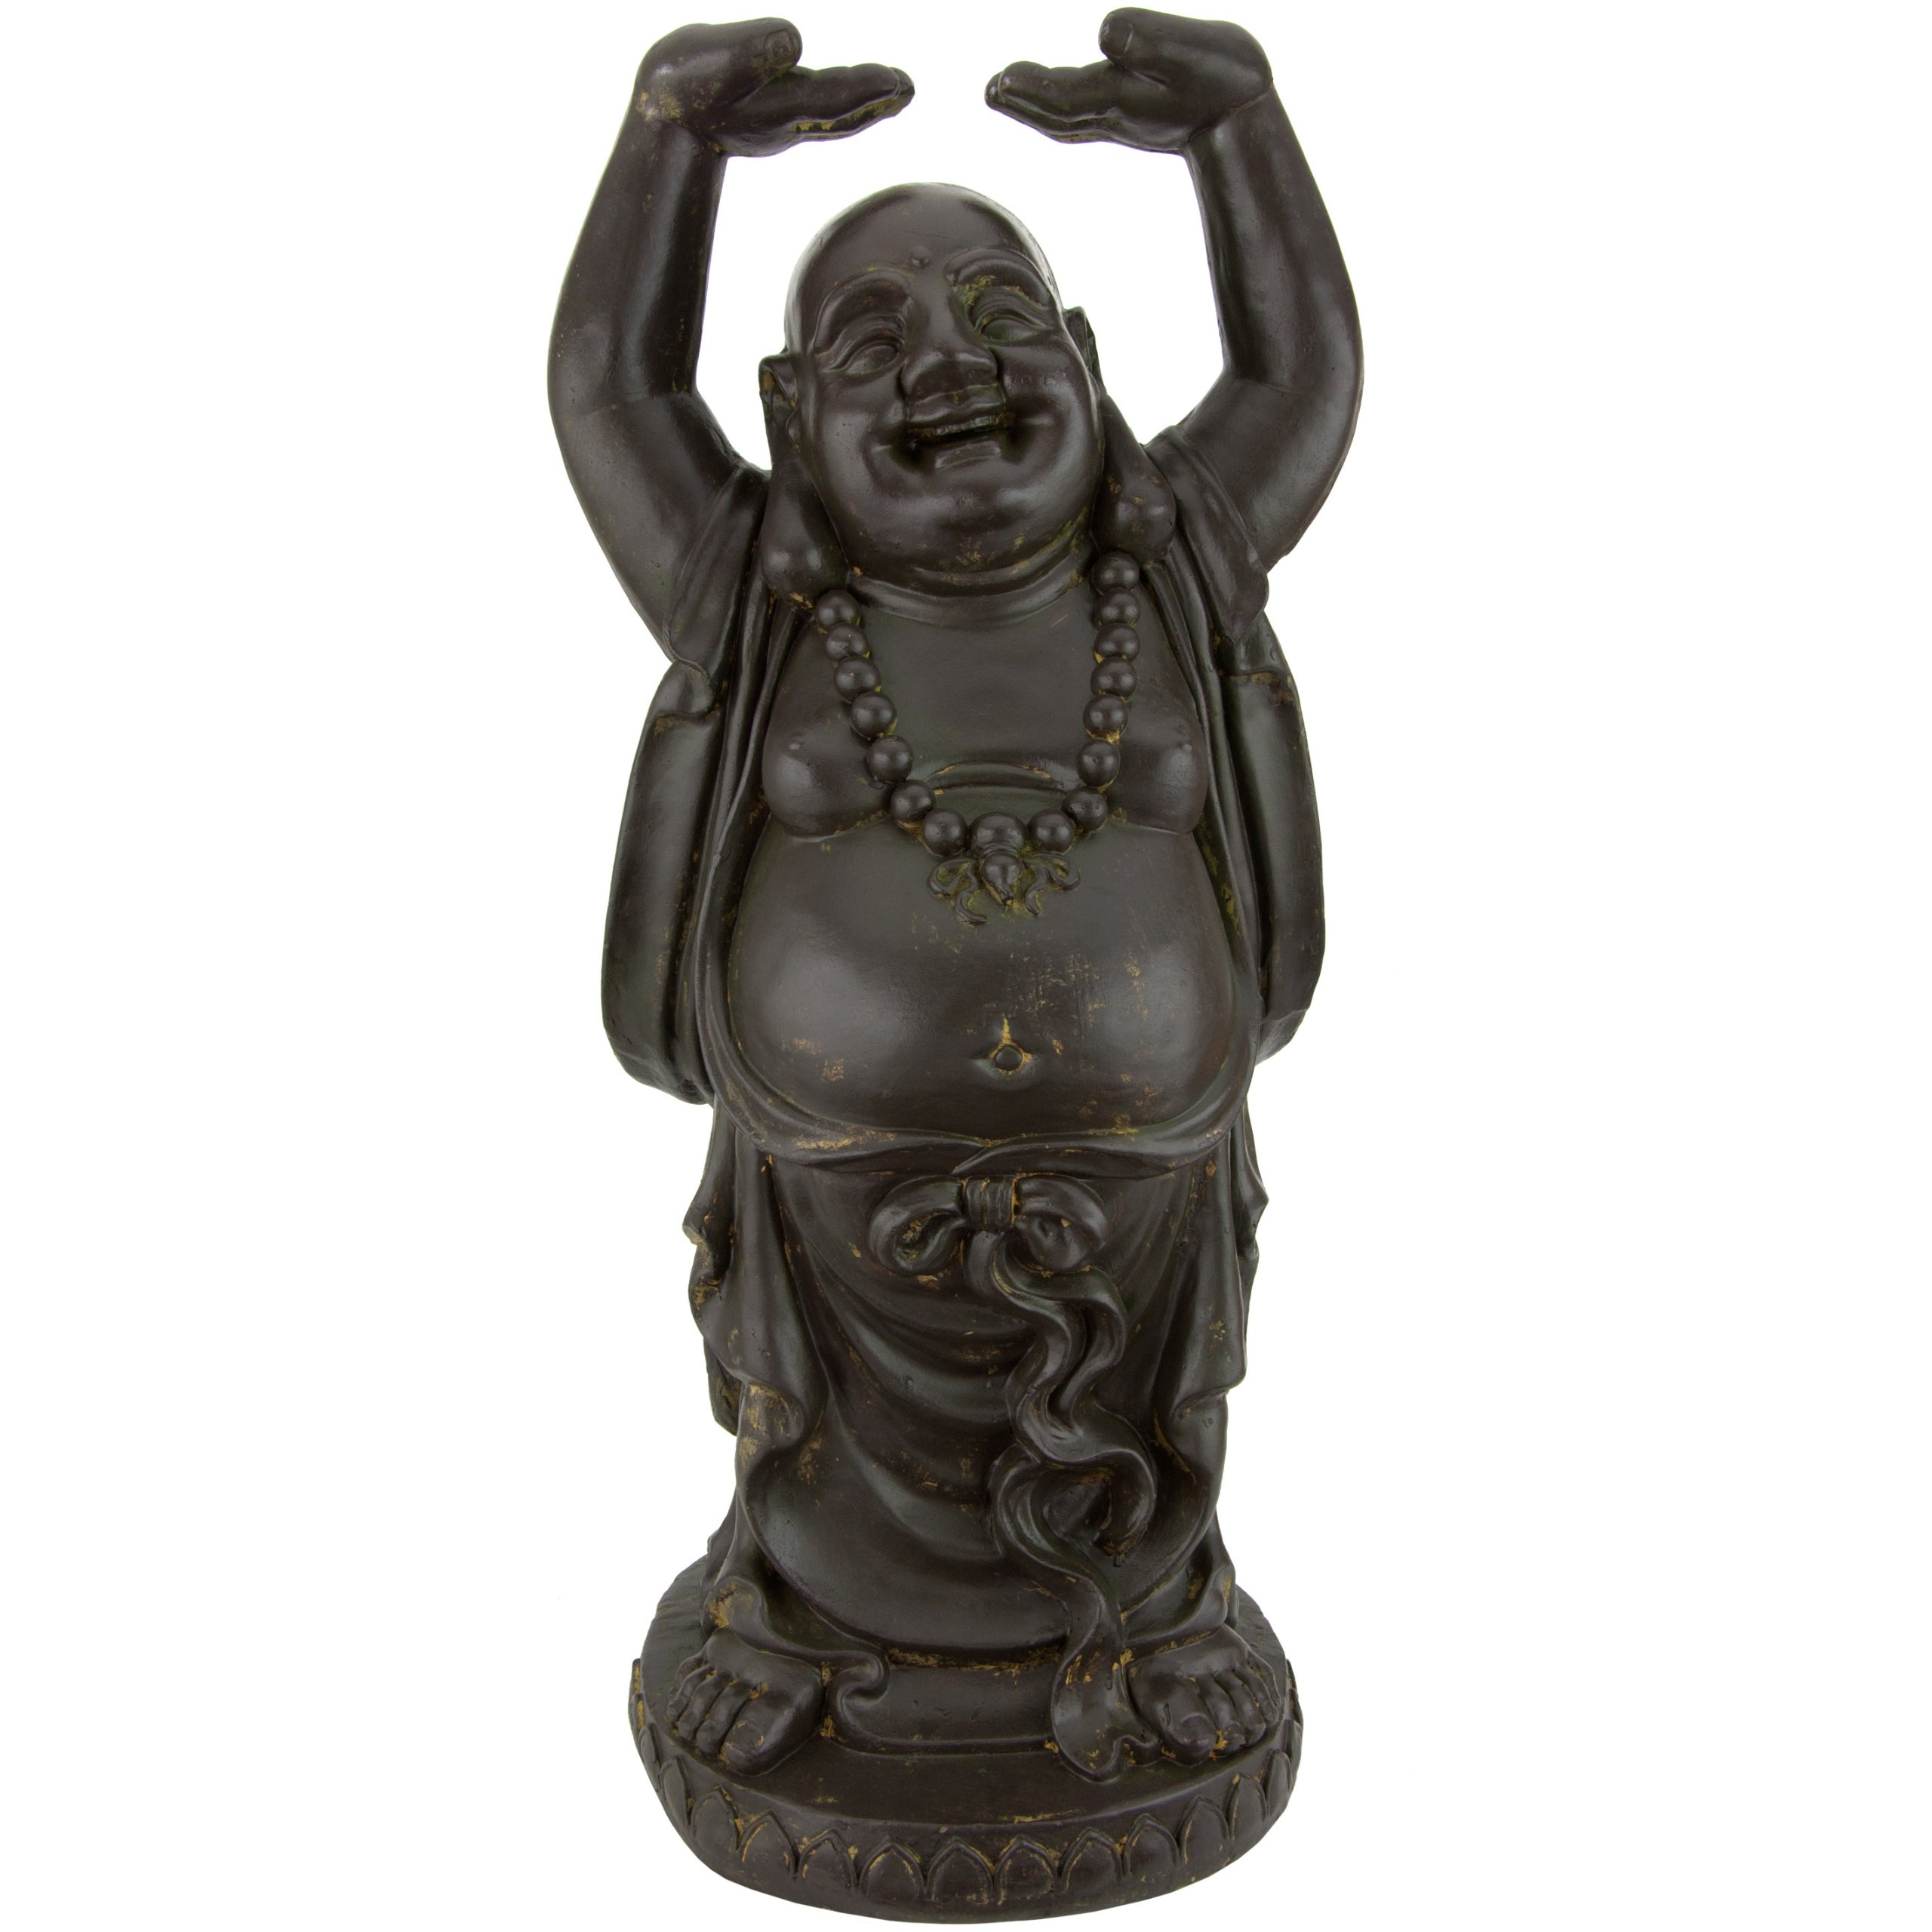 Oriental Furniture 3 ft. Tall Standing Laughing Buddha Statue